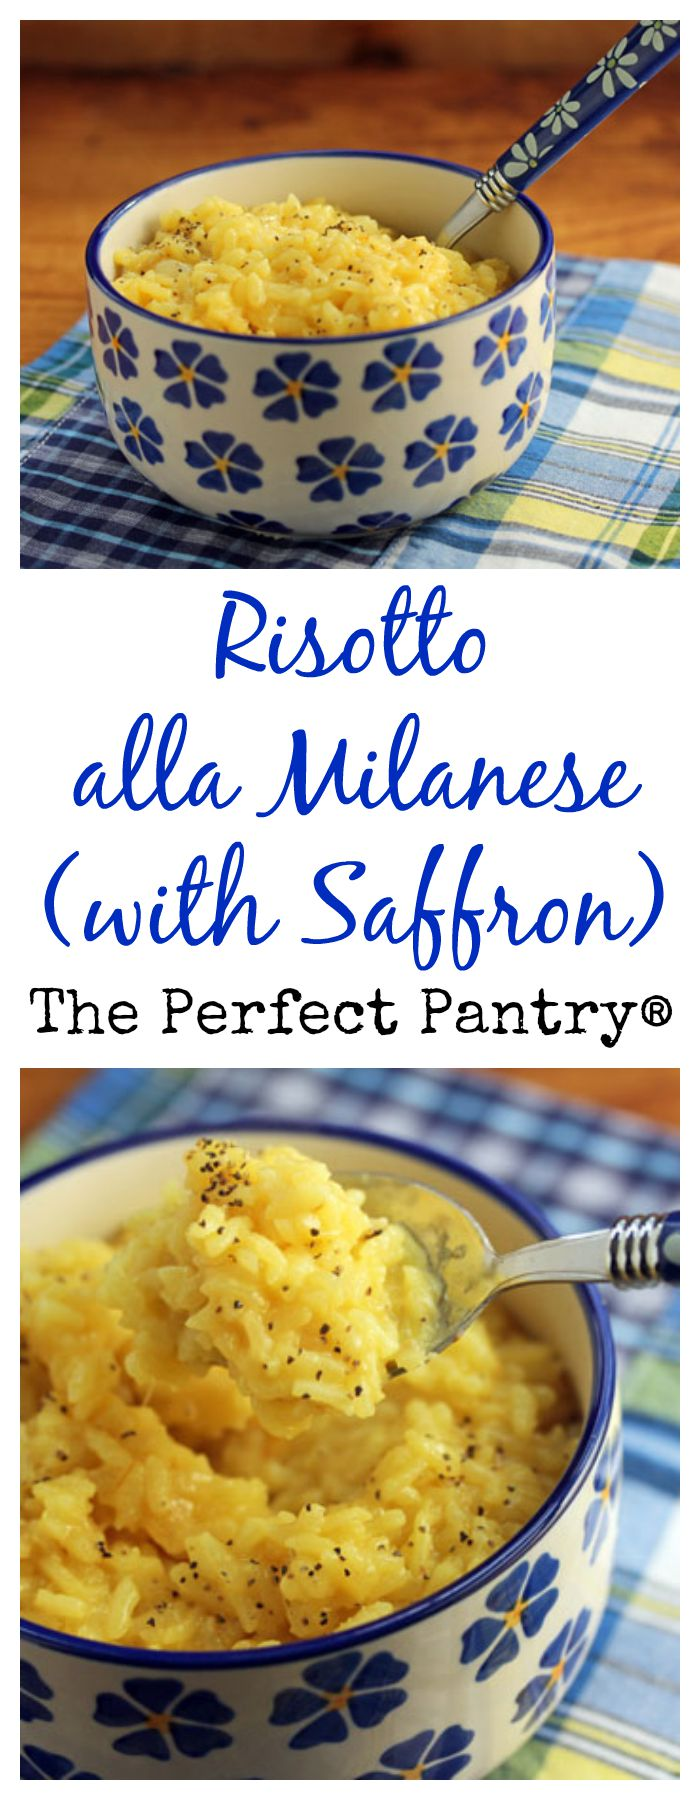 Gorgeous risotto gets its color from saffron; it's so easy to make in the pressure cooker. From The Perfect Pantry.